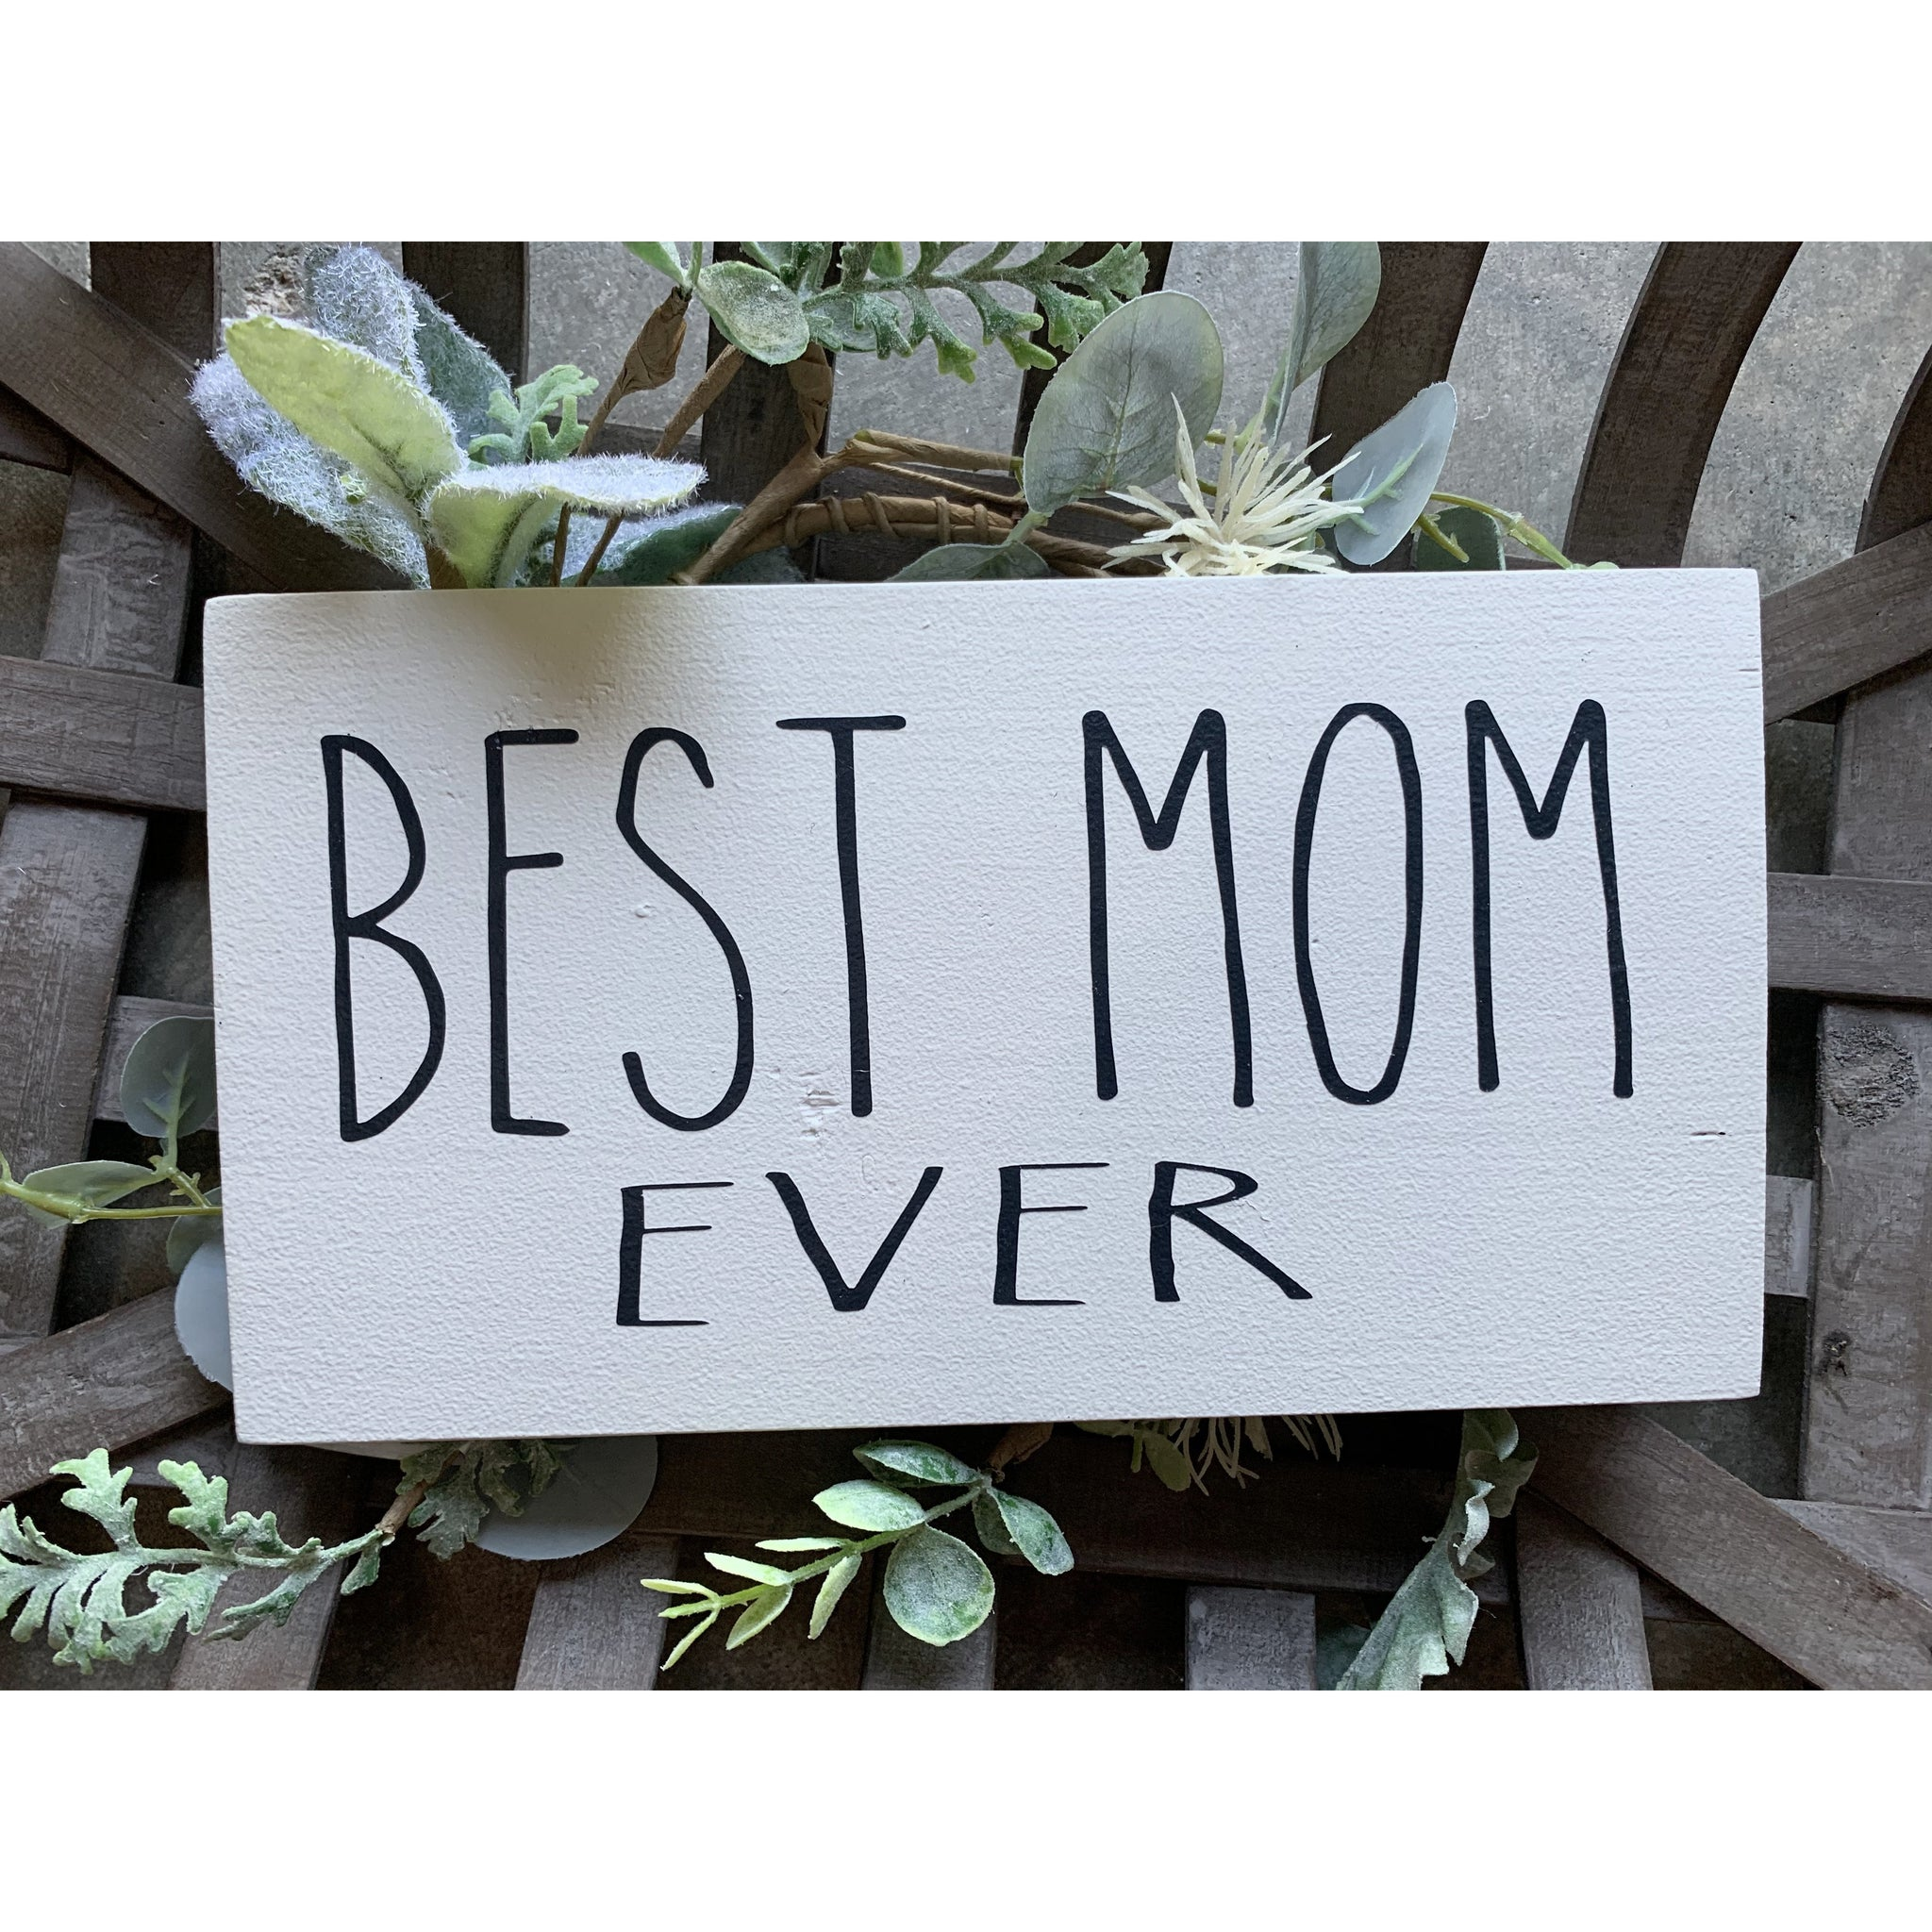 Best Mom Ever Hand Painted Wood Sign